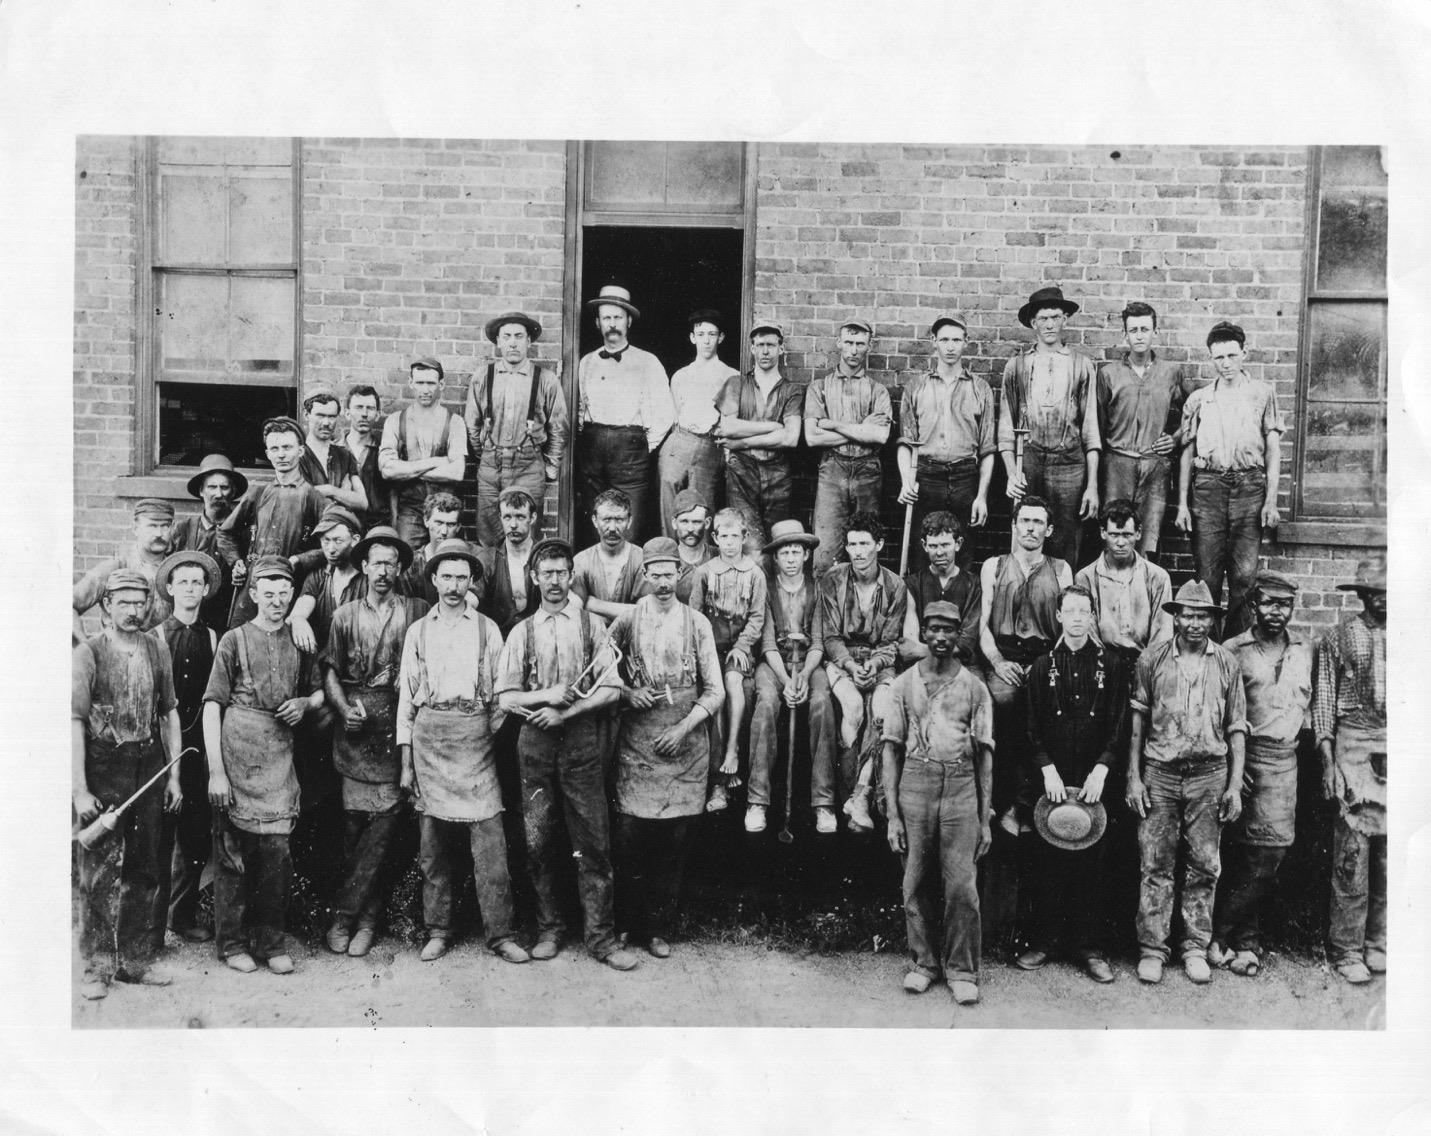 Black and White picture of Hardwick Stove workers in 1898